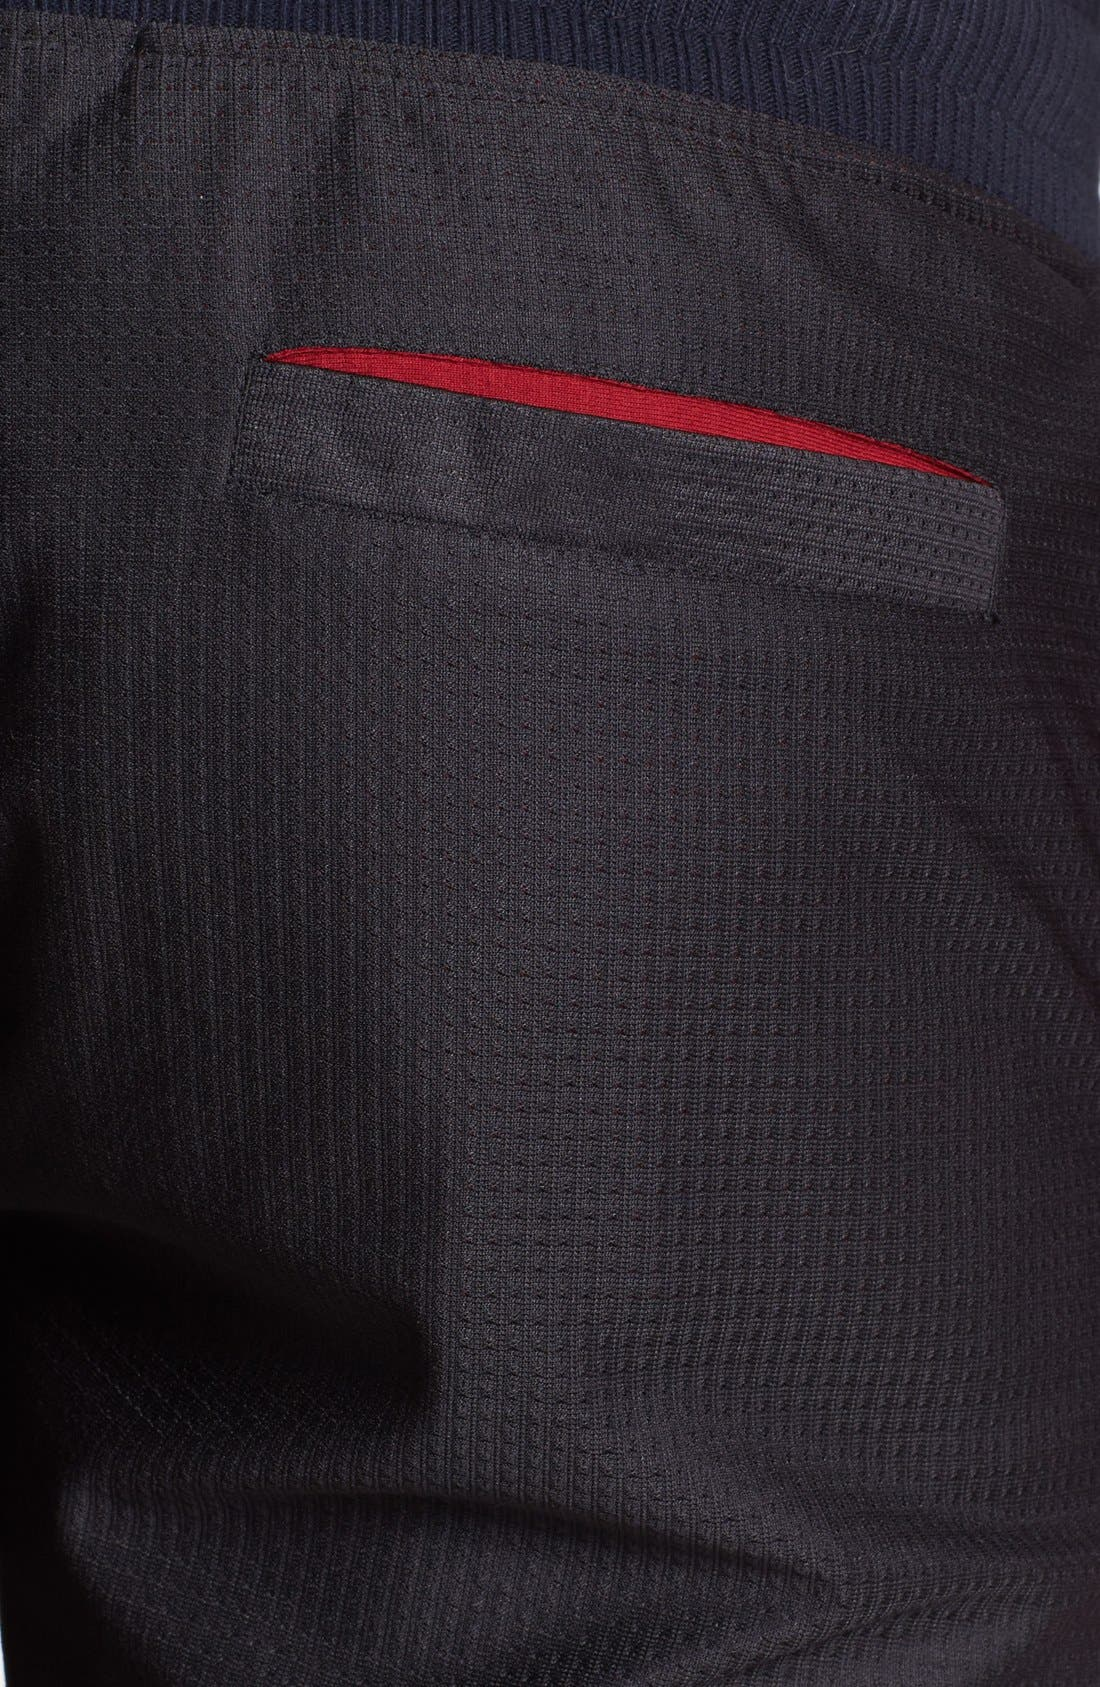 Alternate Image 3  - Number:LAB 'cool:TECH' Double Layer Drawstring Shorts